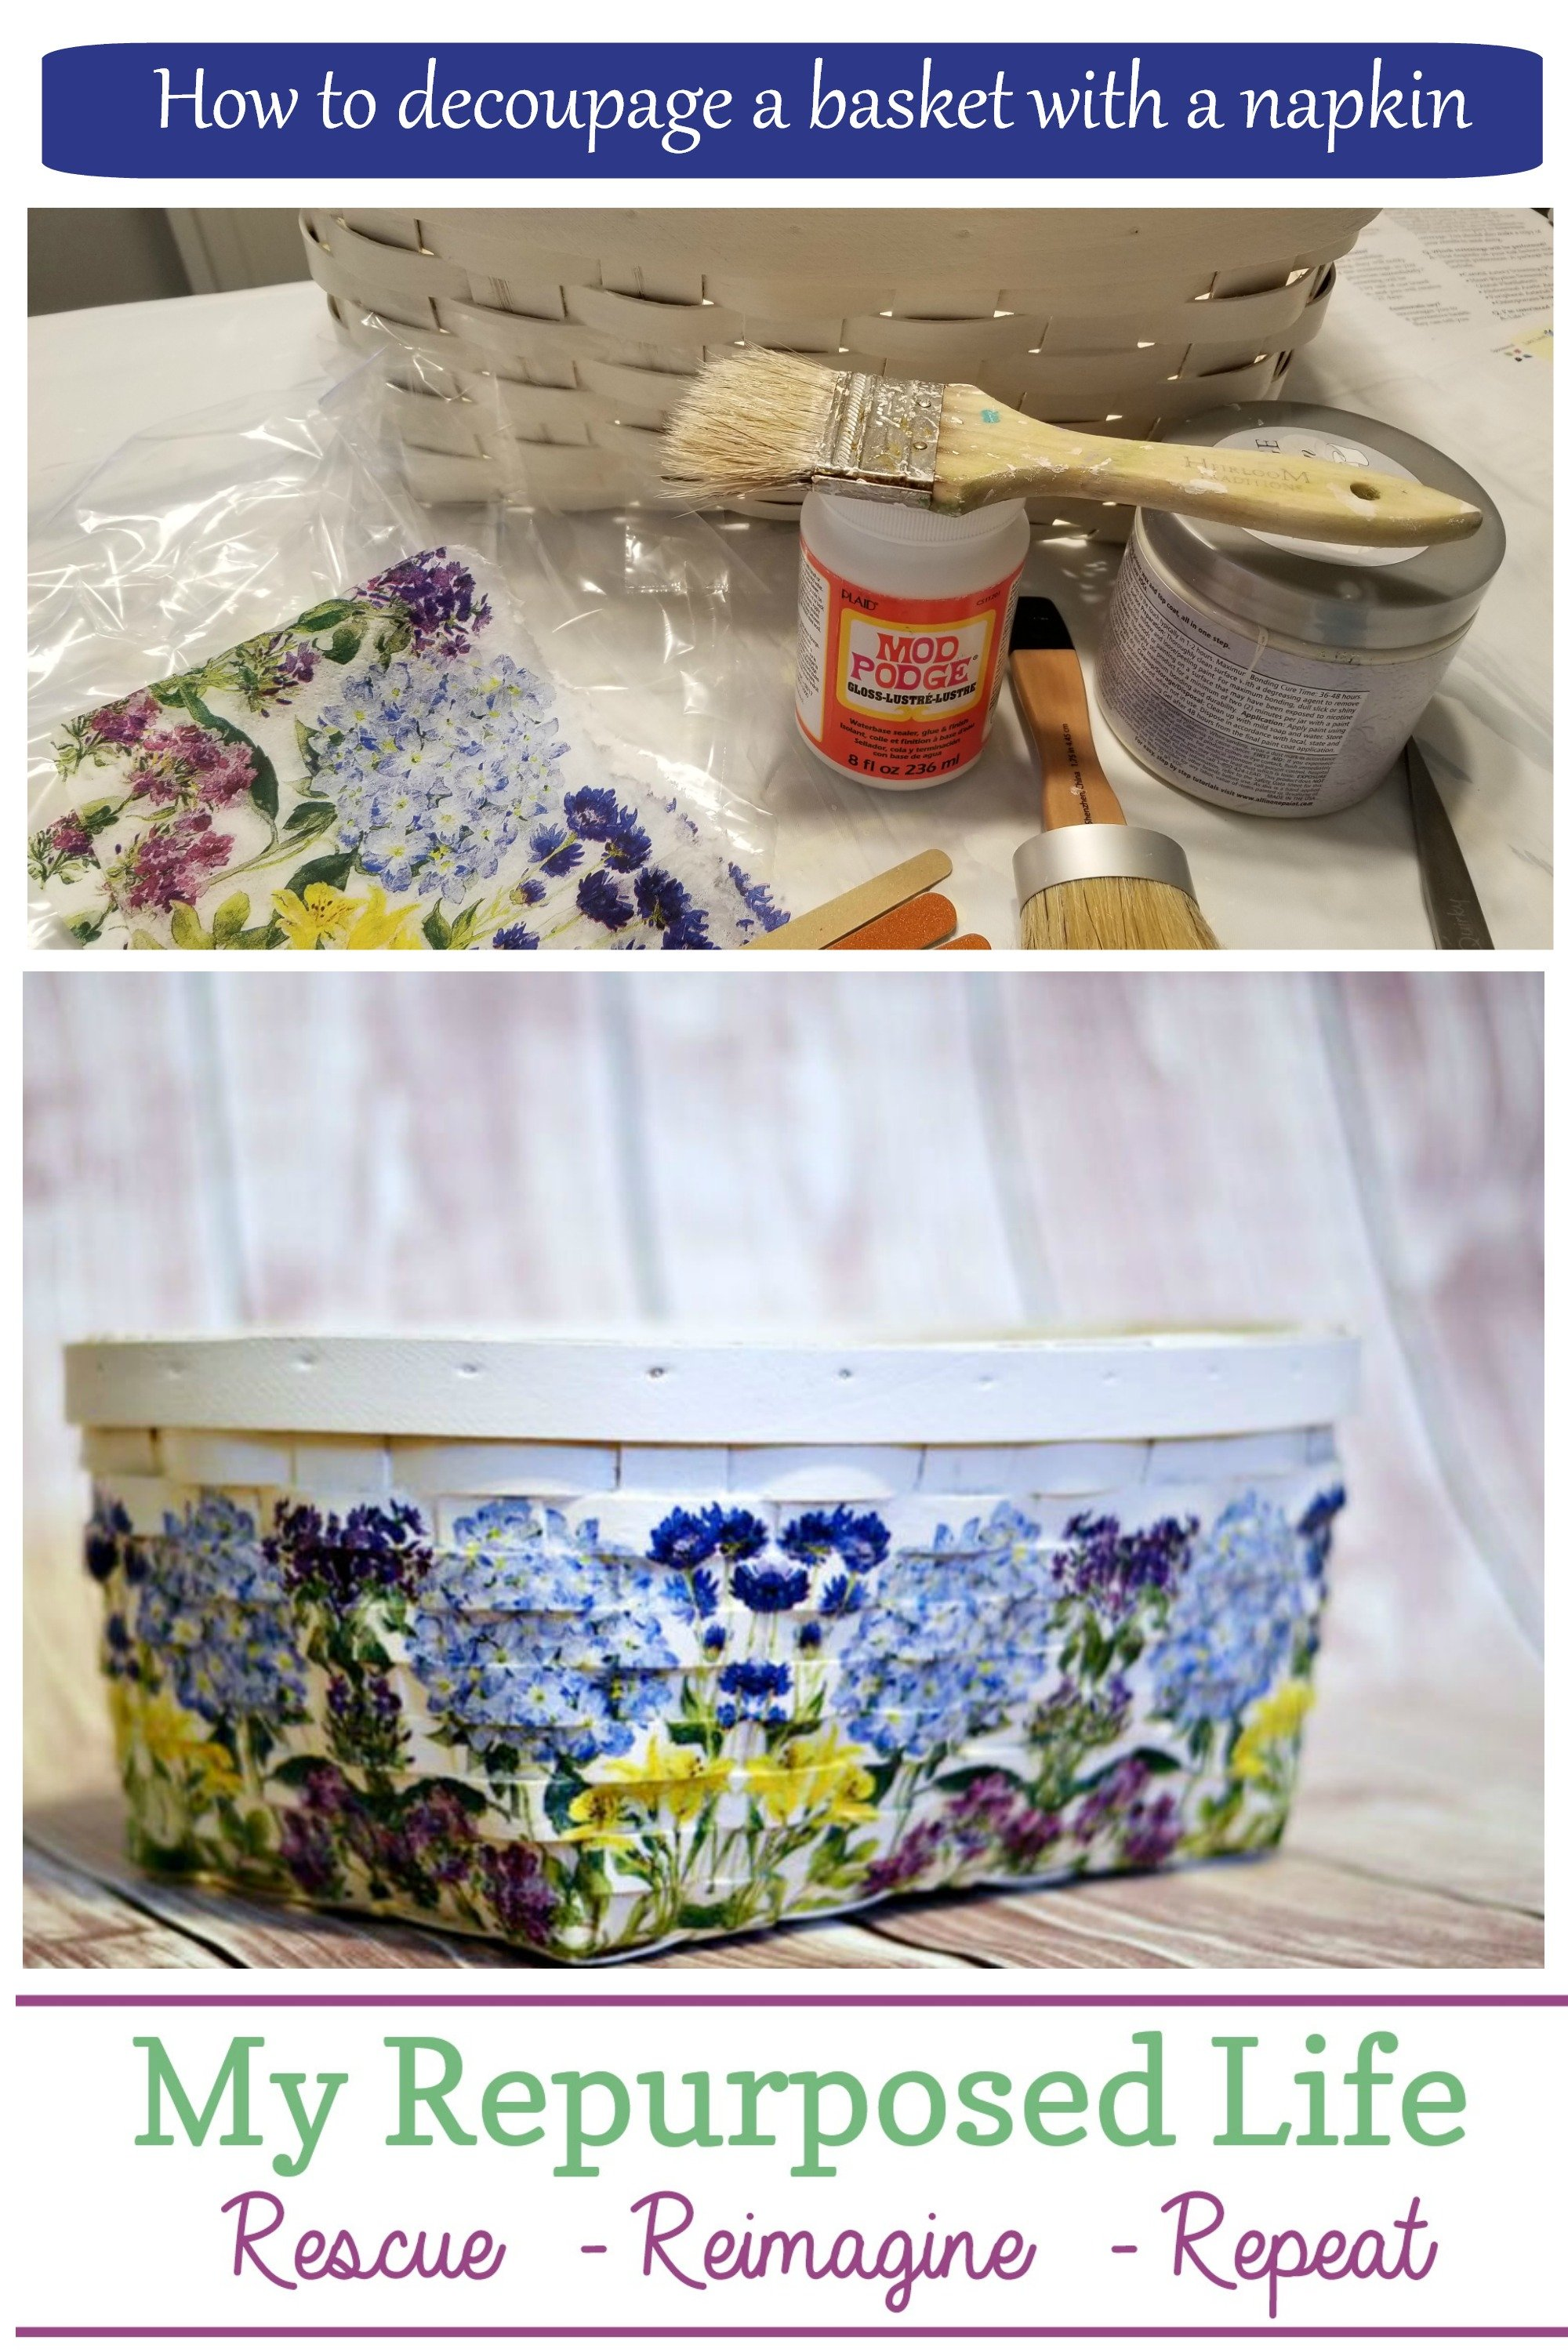 Step by step directions on how to decoupage a thrift store basket with hydrangea beverage napkins. I'm not sure why I waited so long to do this project. I have a lot of napkins left over, what should I do next? via @repurposedlife